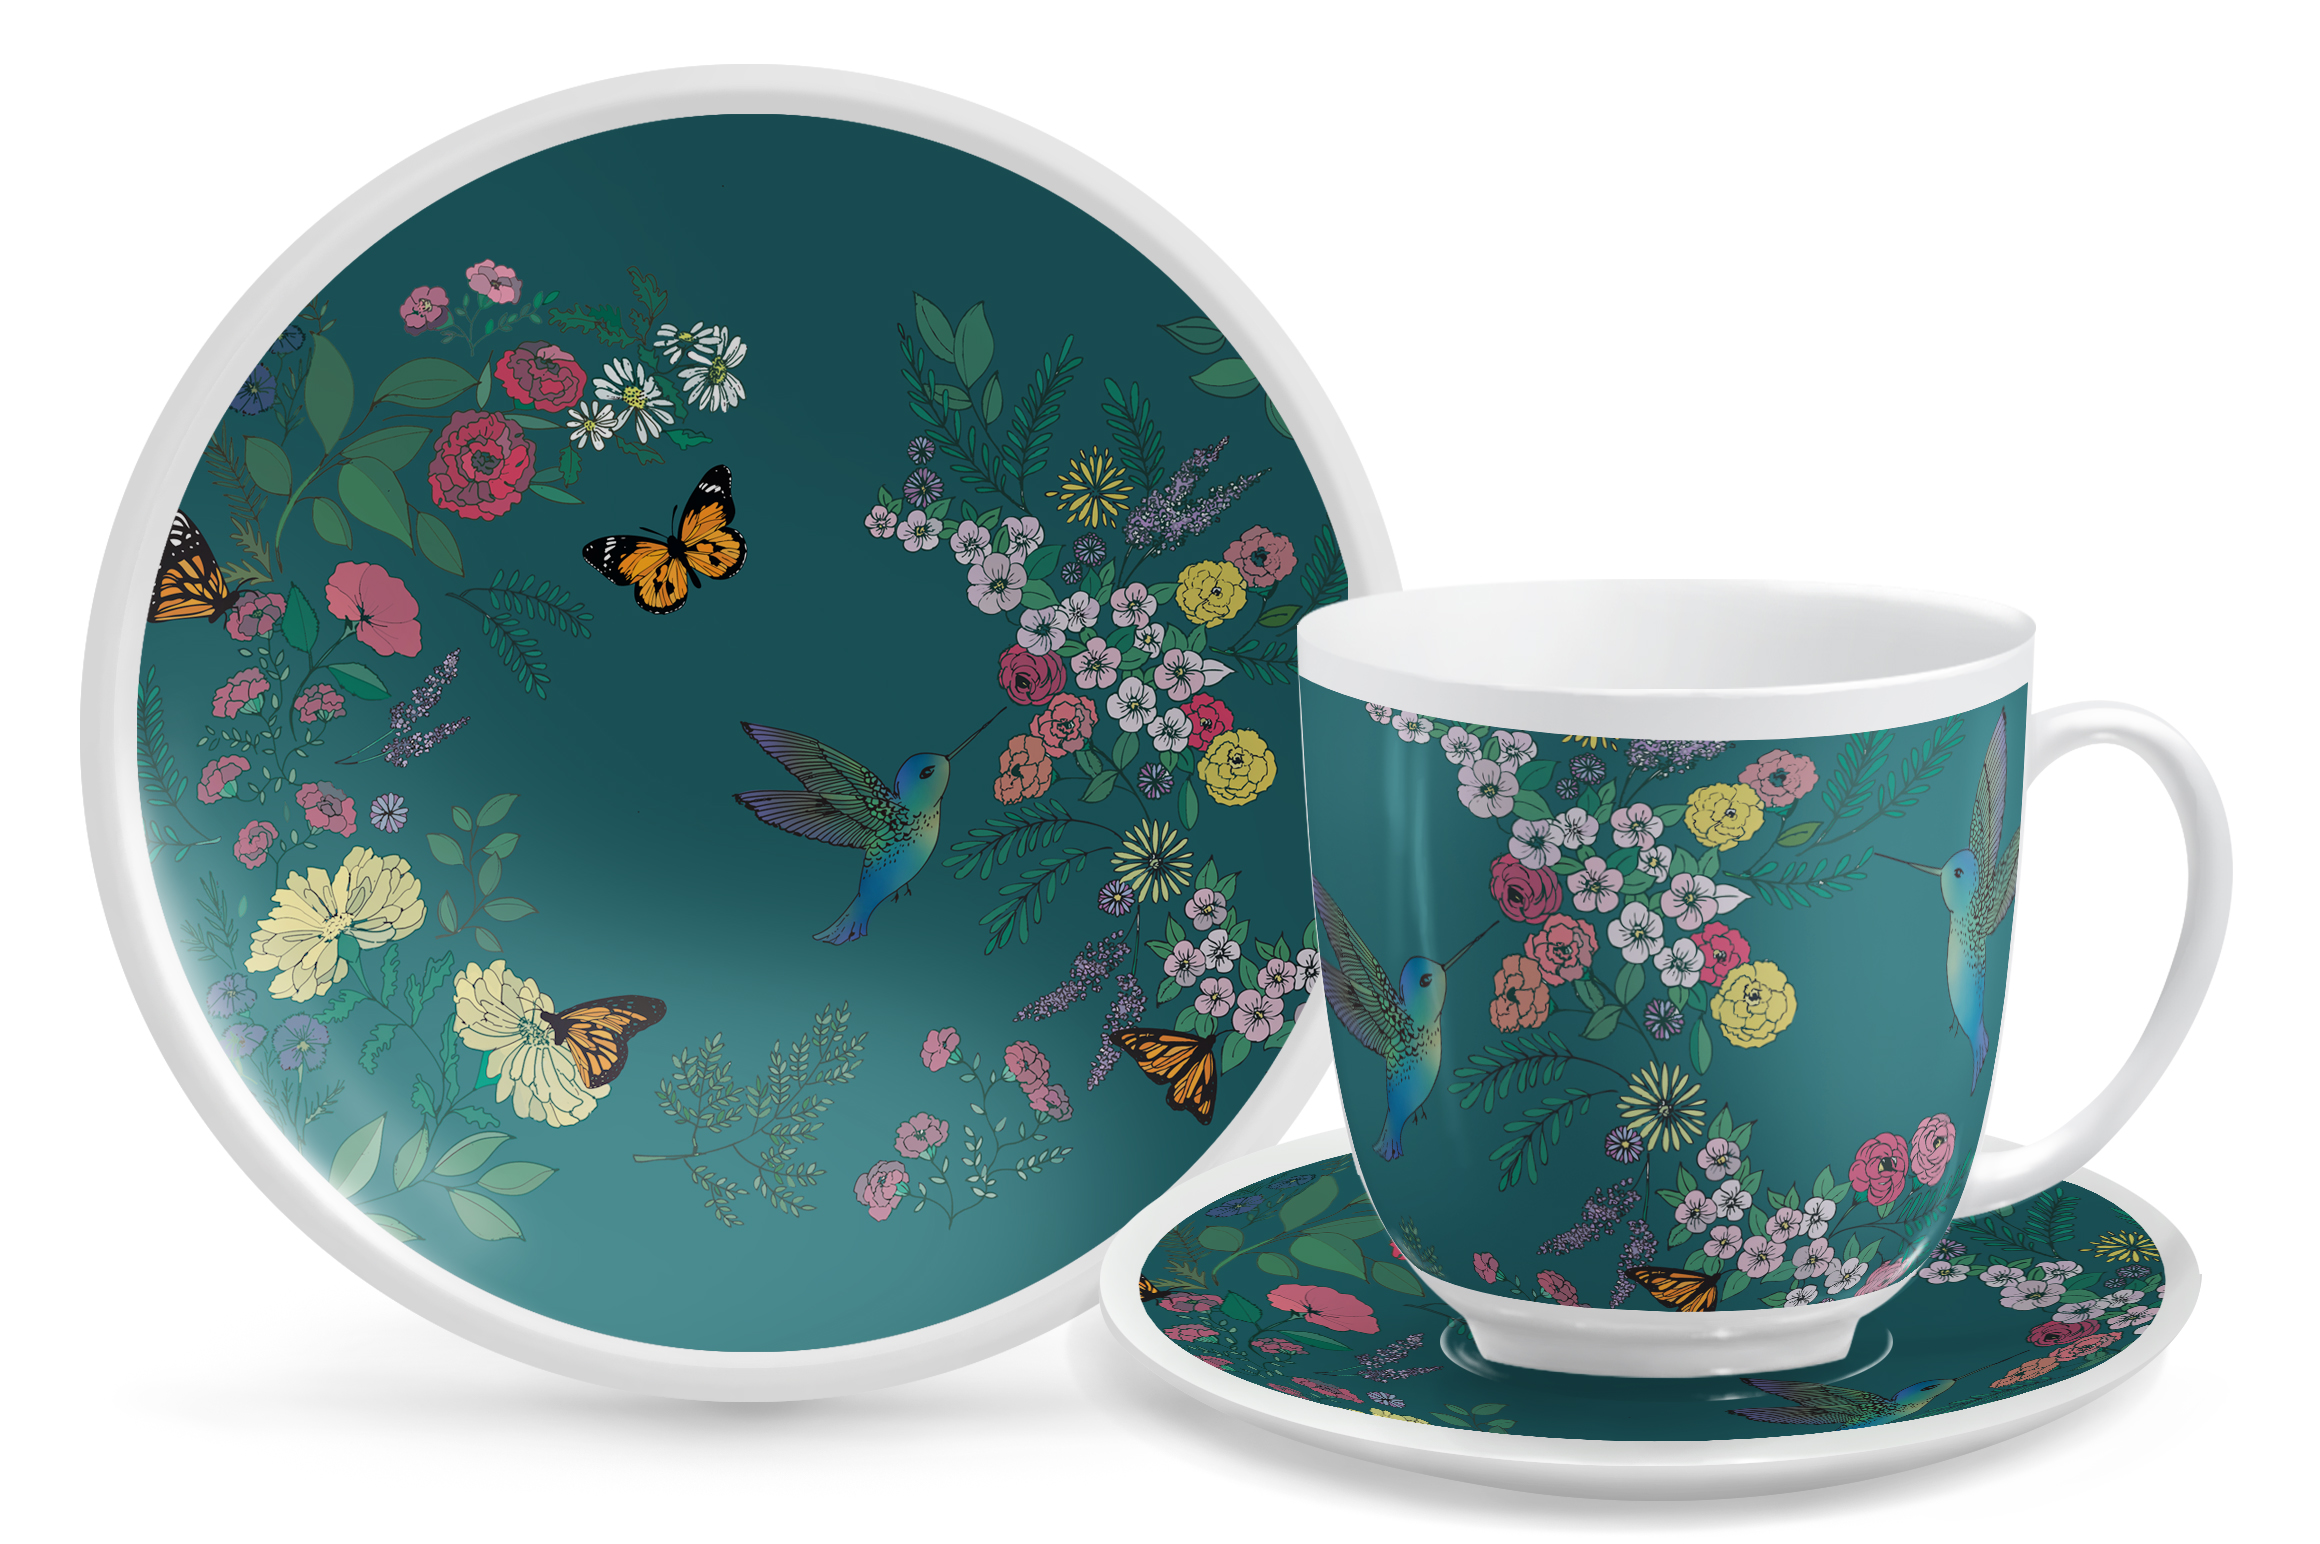 Jessica Laughlin Designs_Product Mockup Breakfastware.jpg